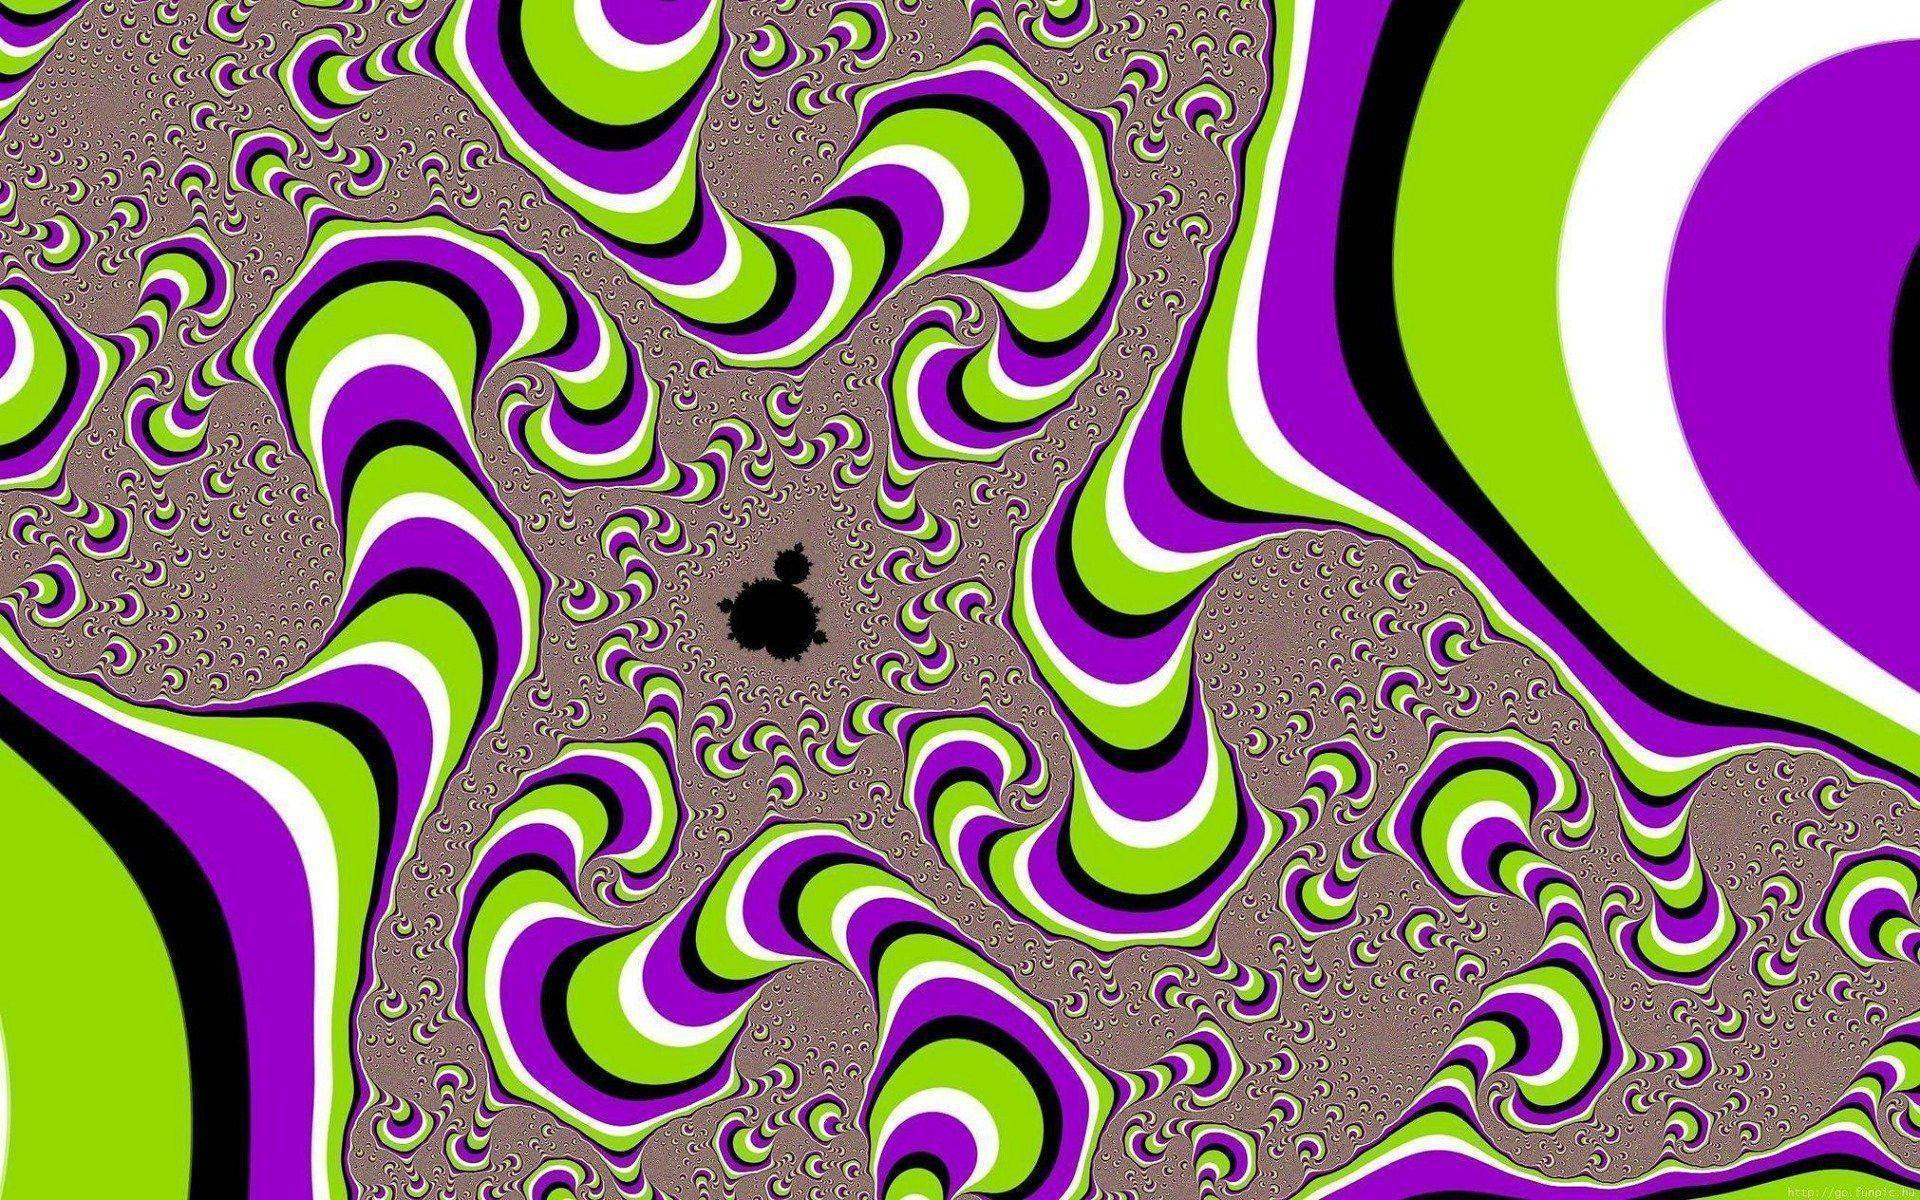 Crazy Trippy Backgrounds - Wallpaper Cave